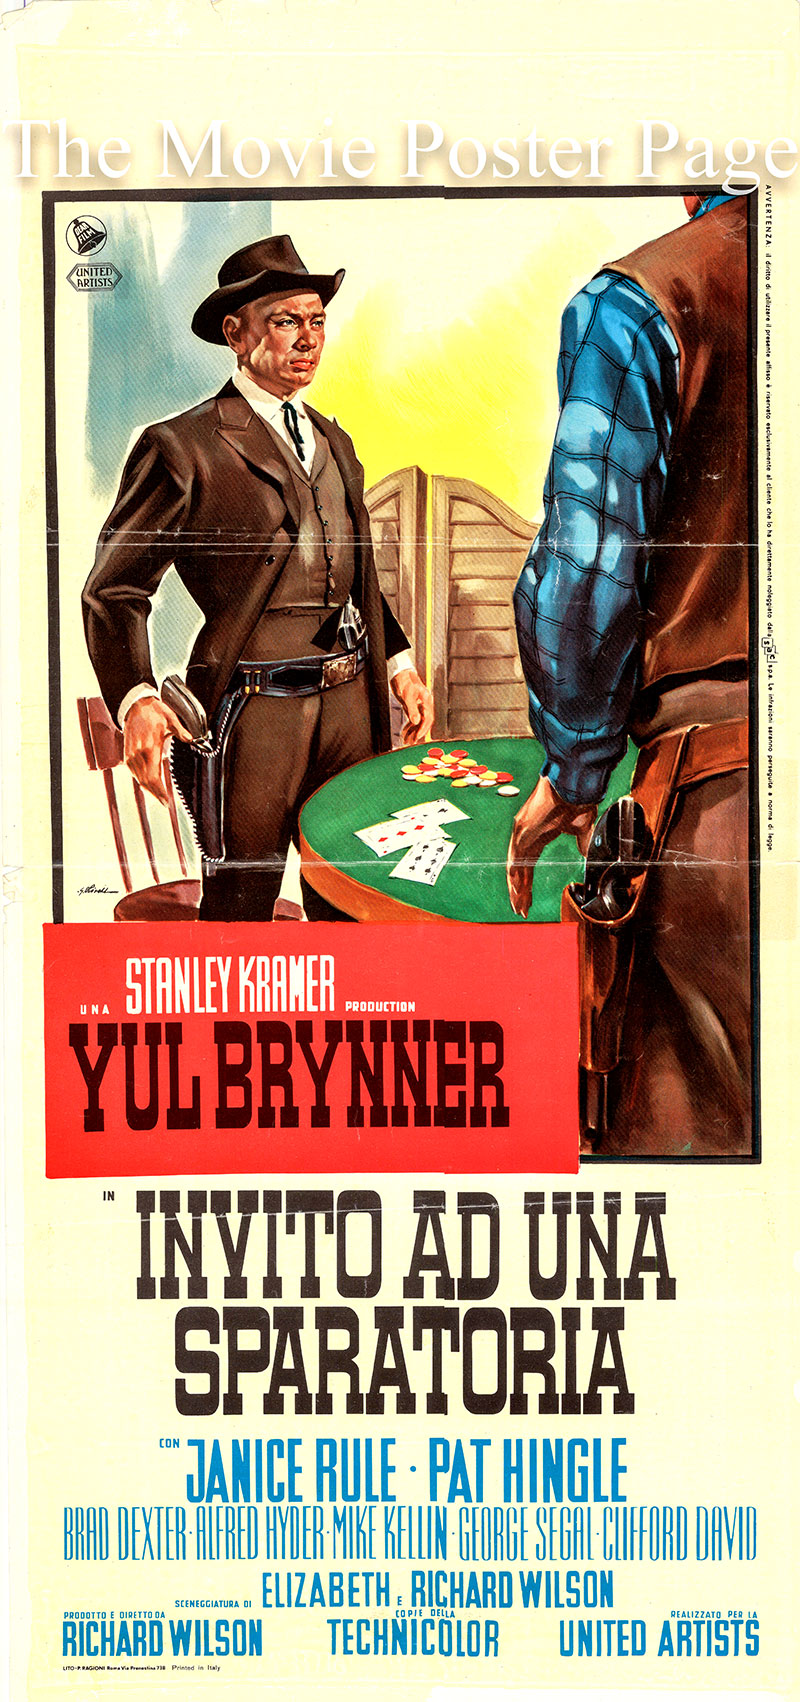 Pictured is an Italian locandina poster for the 1964 George Wilson film Invitation to a Gunfighter starring Yul Brynner.